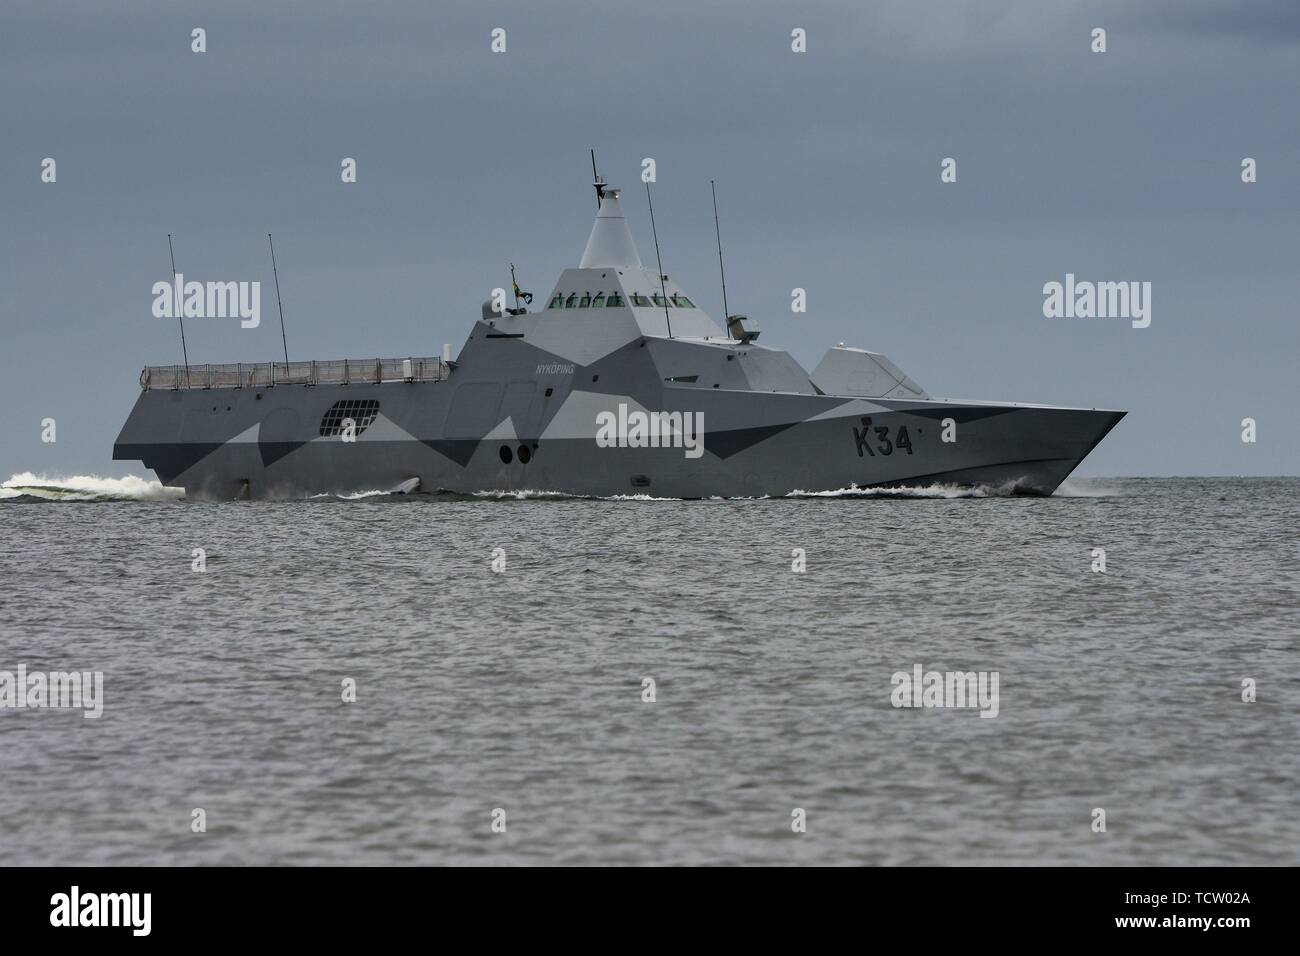 Keel, Deutschland. 06th June, 2019. 06.06.2019, the Corvette K34 Nykoping of the Swedish Navy when entering the Kiel Forde. The stealth ship participates in the NATO maneuver BALTOPS. The Visby class corvettes are among the world's first stealthy design stealth aircraft. Its water jet propulsion system has a maximum speed of 35 knots (65 km/h). | usage worldwide Credit: dpa/Alamy Live News - Stock Image